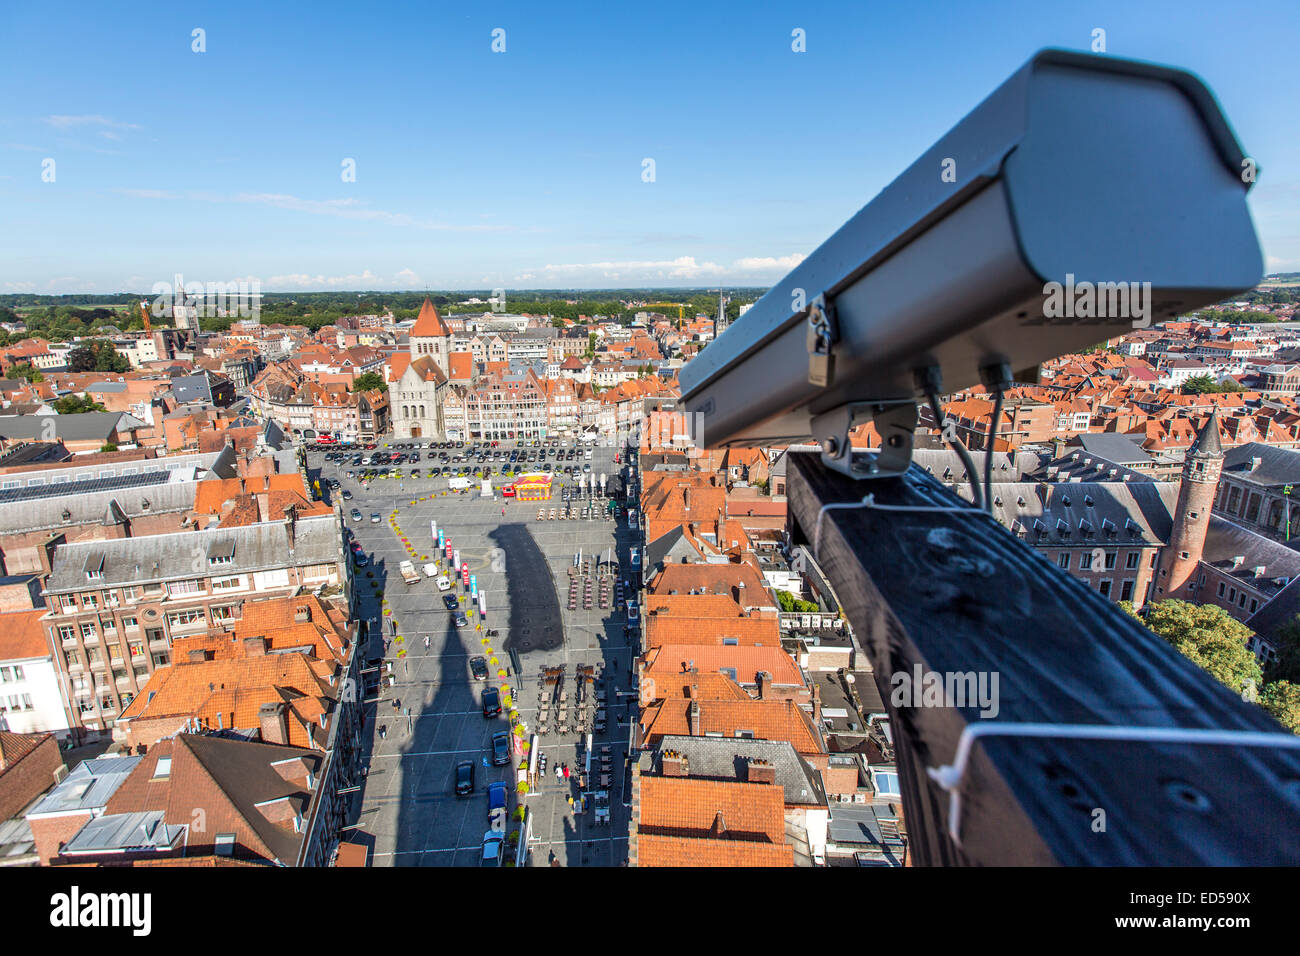 Grand Place, view from the belfry tower in the old town, Video surveillance camera - Stock Image